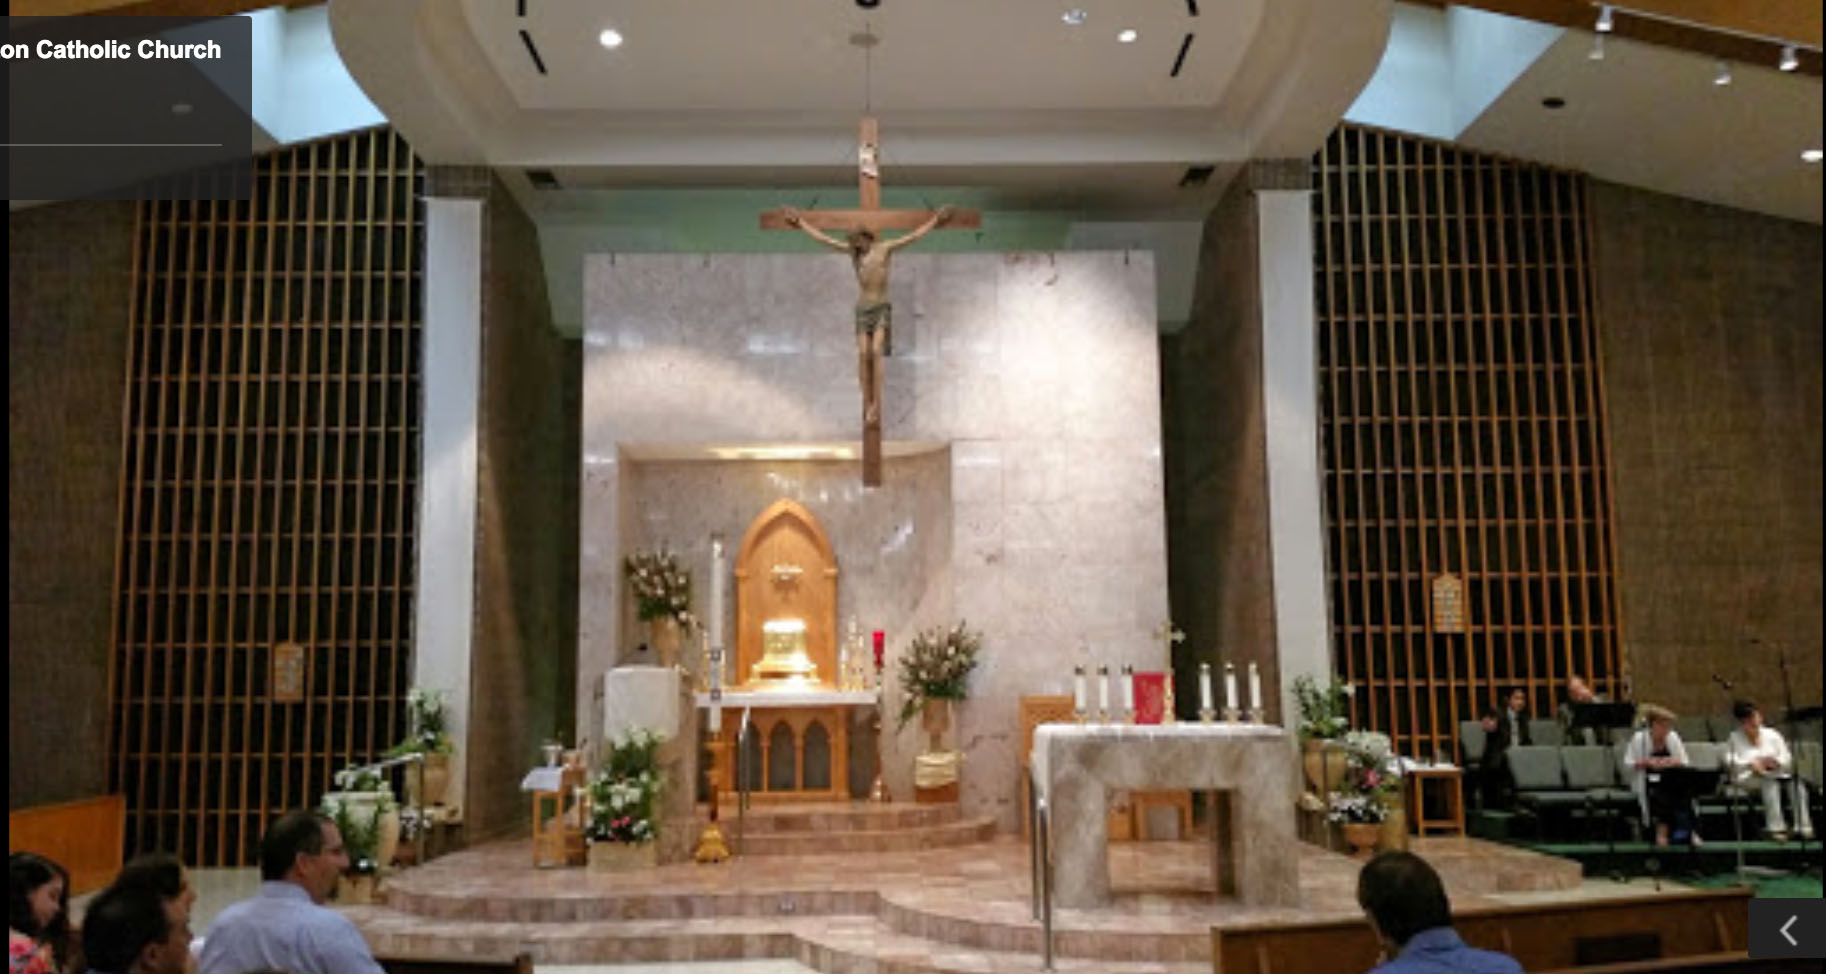 Altar before and after st elizabeth ann seton in houston tx st elizabeth before biocorpaavc Gallery